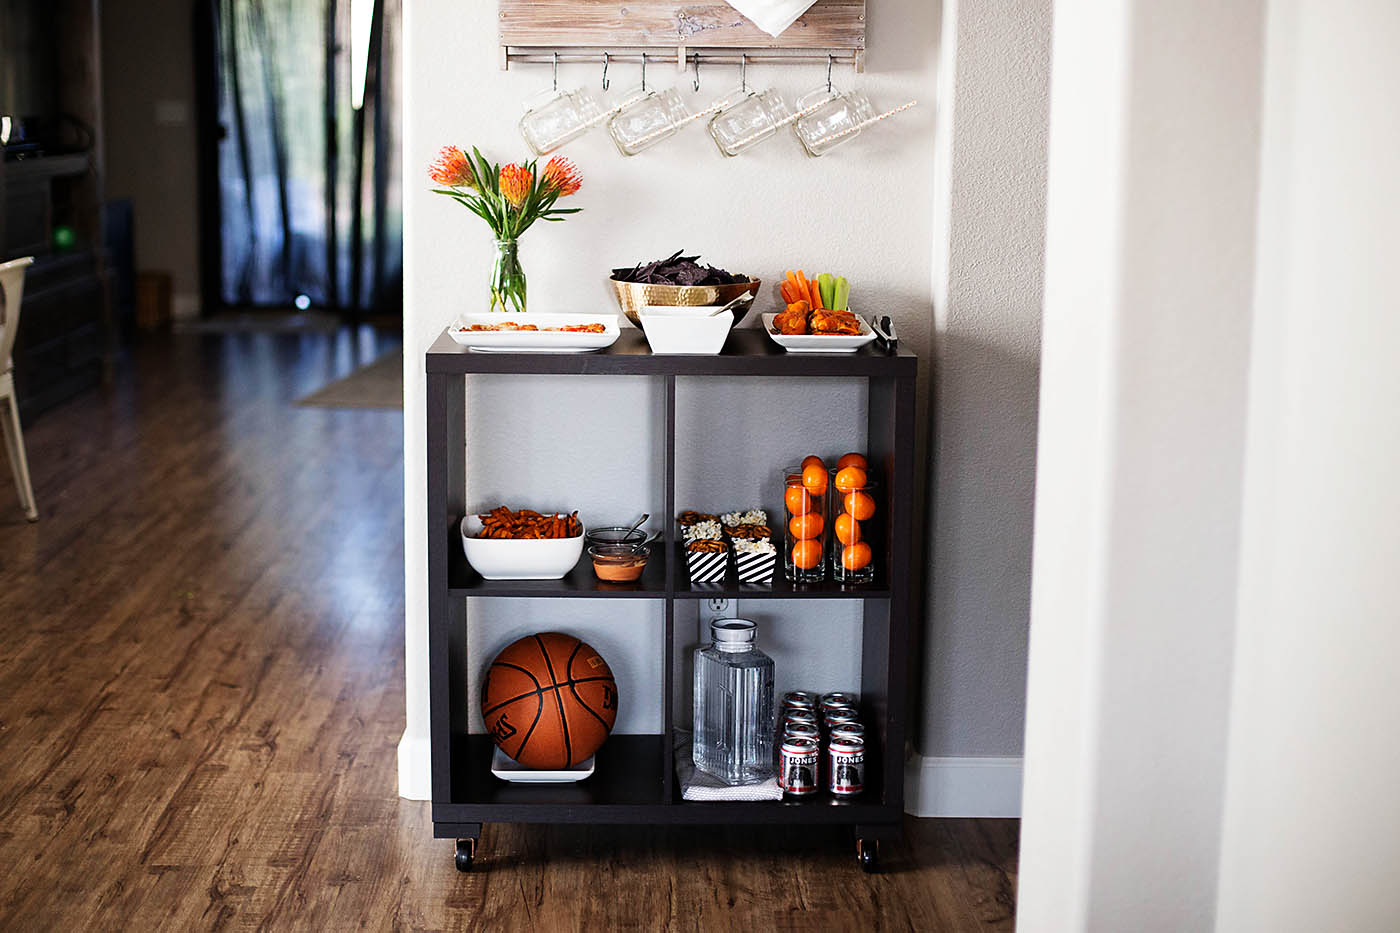 5 Easy Party Tips + March Madness!